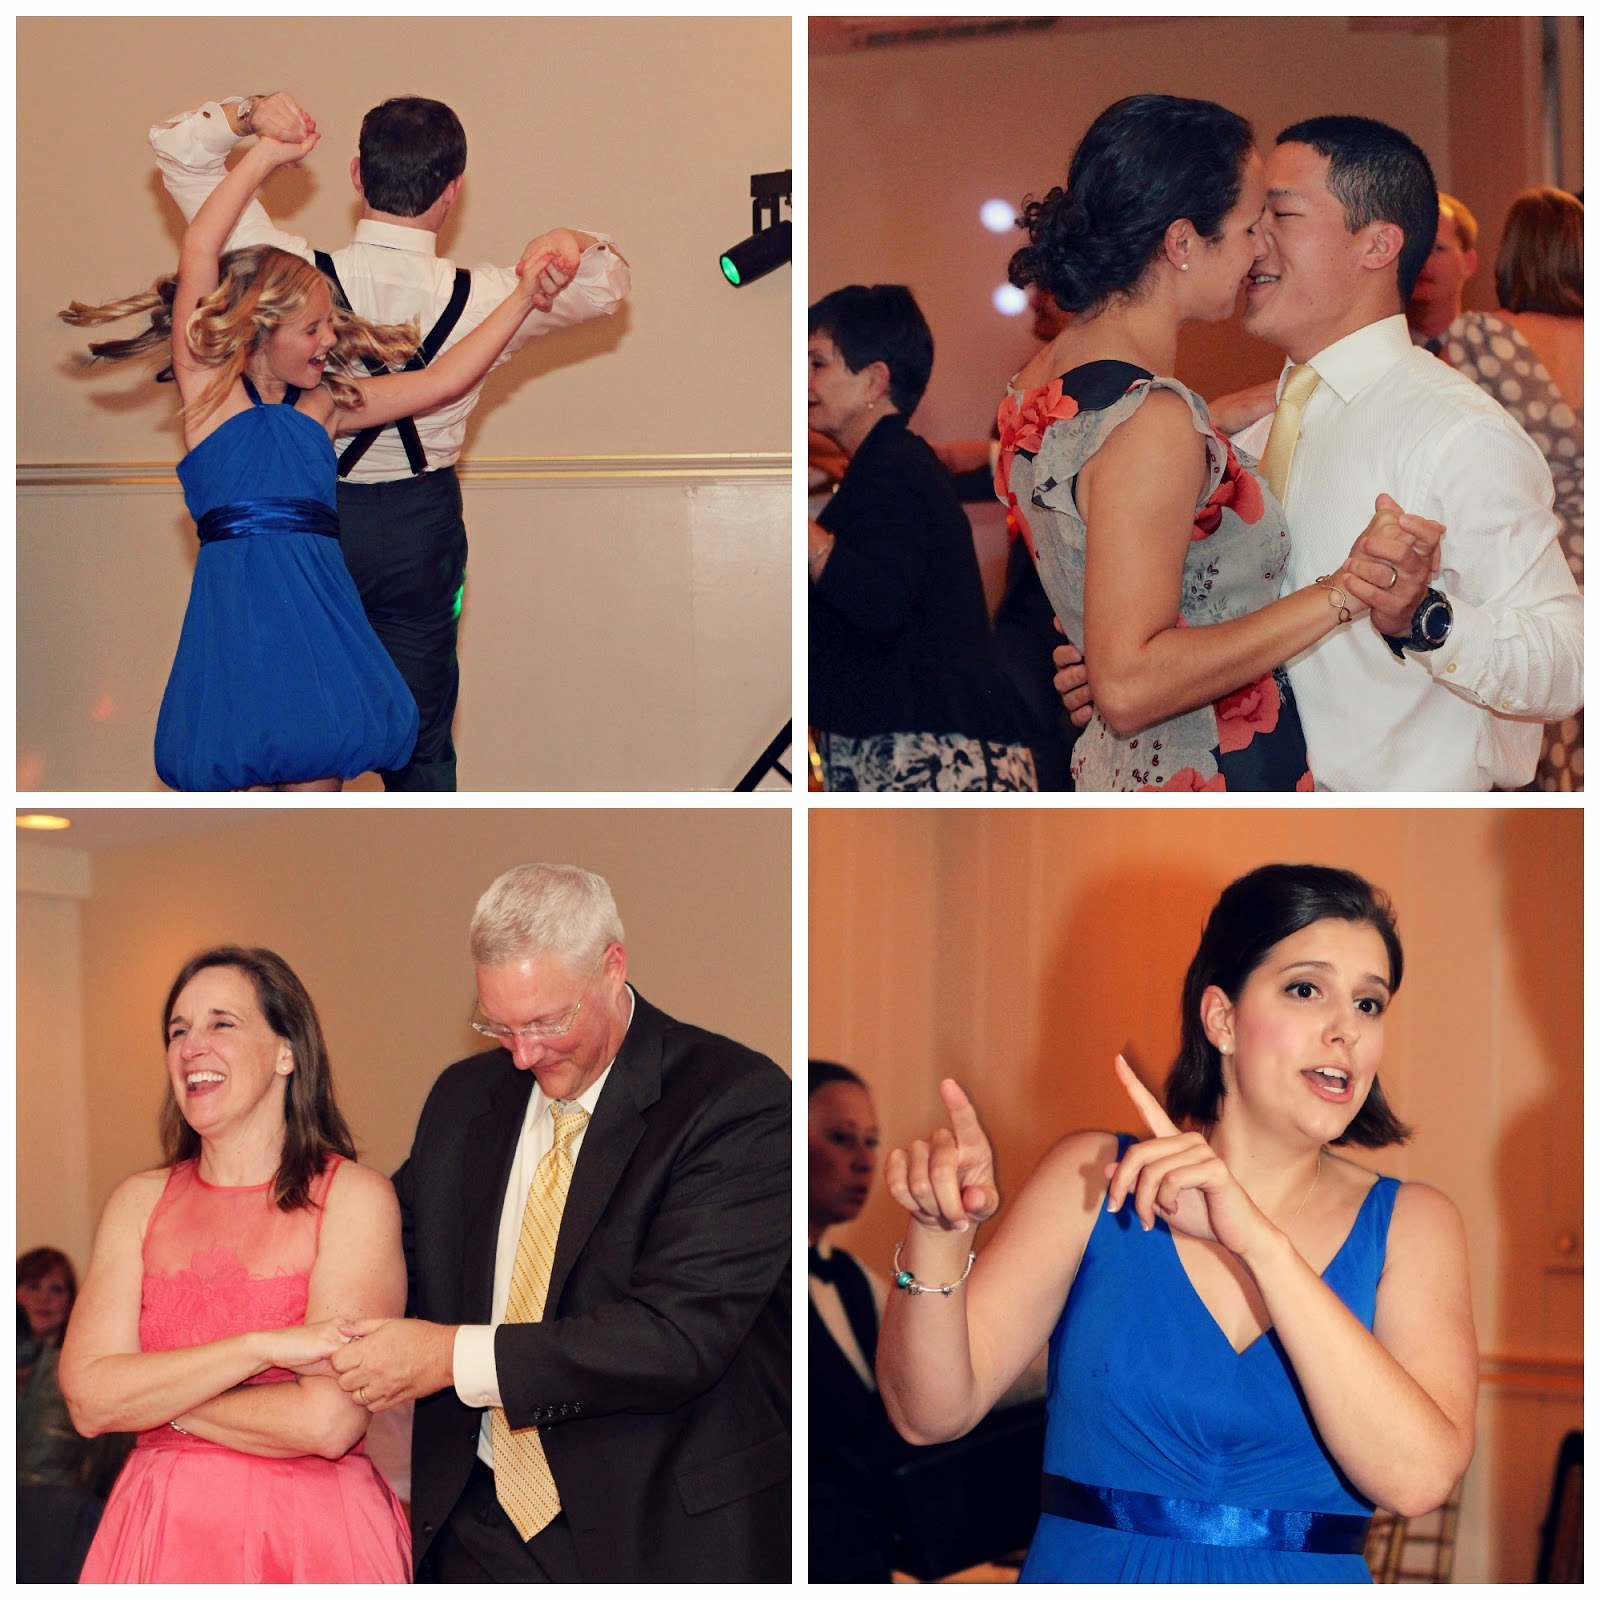 lilly+wedding+collage+dancing.jpg